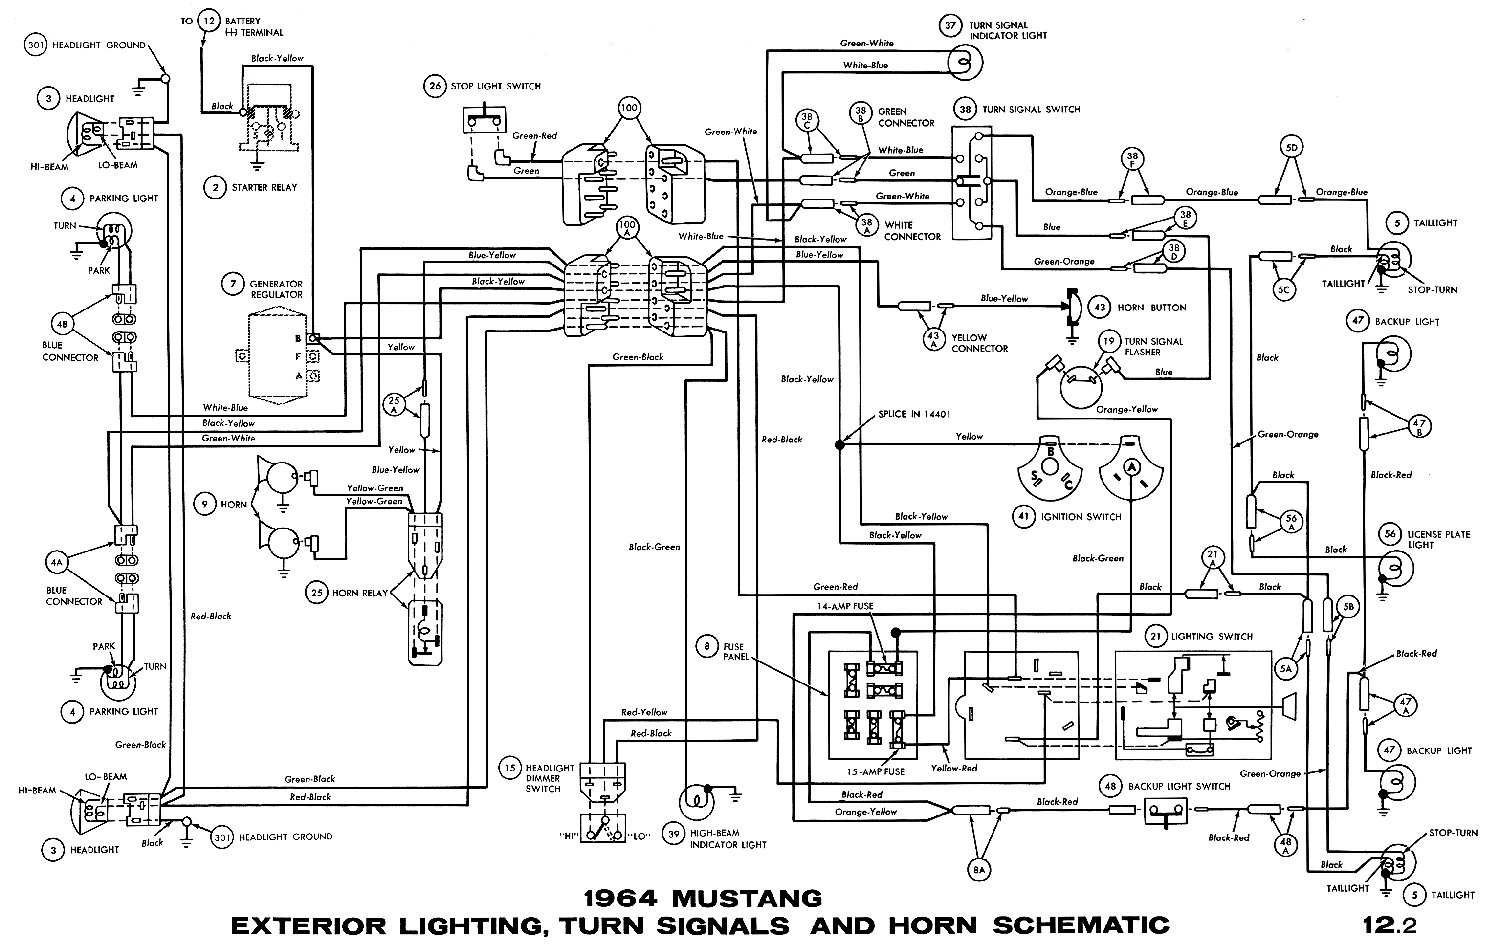 hight resolution of 65 mustang radio wiring diagrams wiring diagrams konsult 65 mustang radio wiring diagrams free download diagram